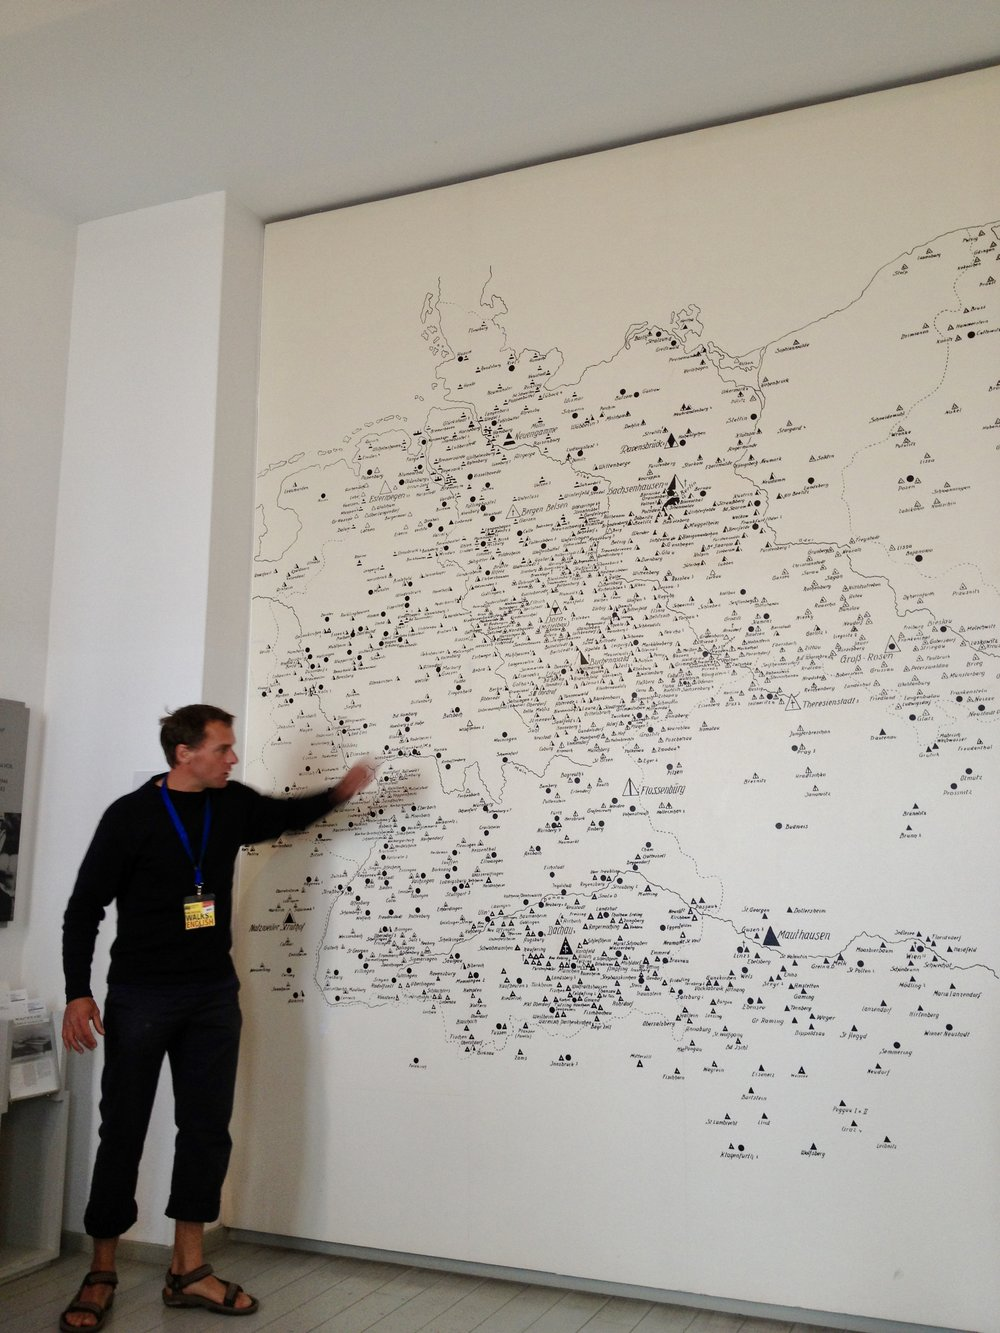 Map of the death and concentration camps at the German Resistance Memorial Center in Berlin. The number of Holocaust victims, including Jews, homosexuals, leftists, people with disabilities and other groups, is estimated between 11 million and 17 million people.